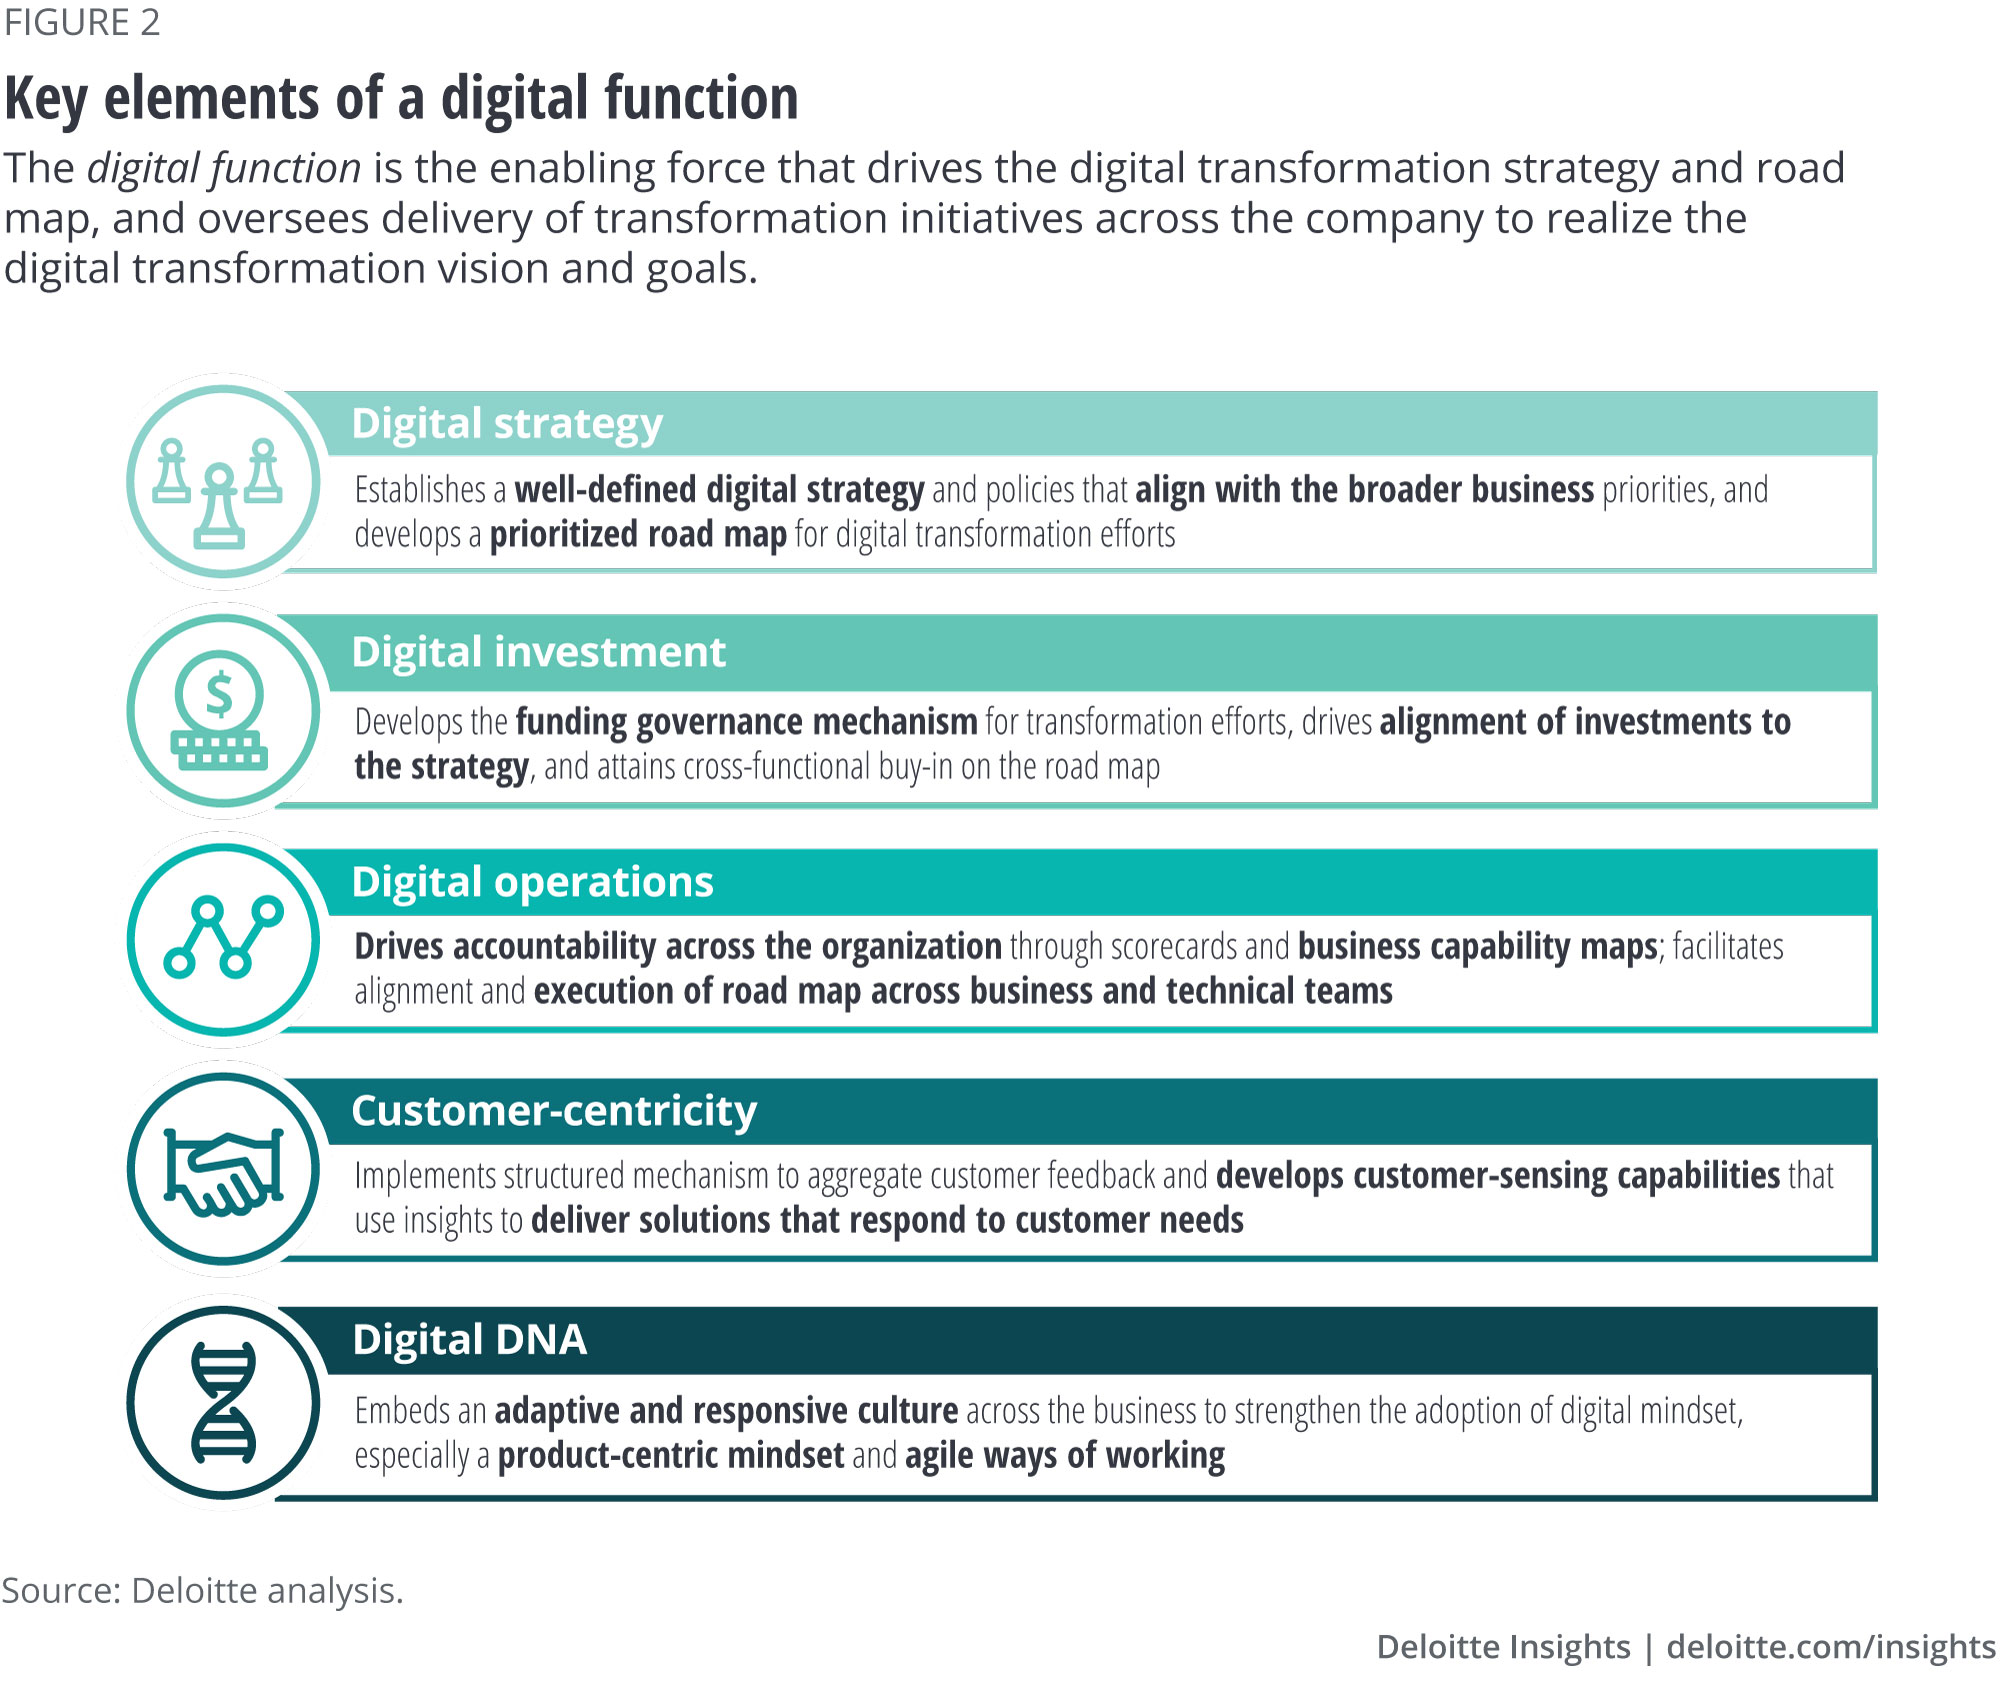 Key elements of a digital function